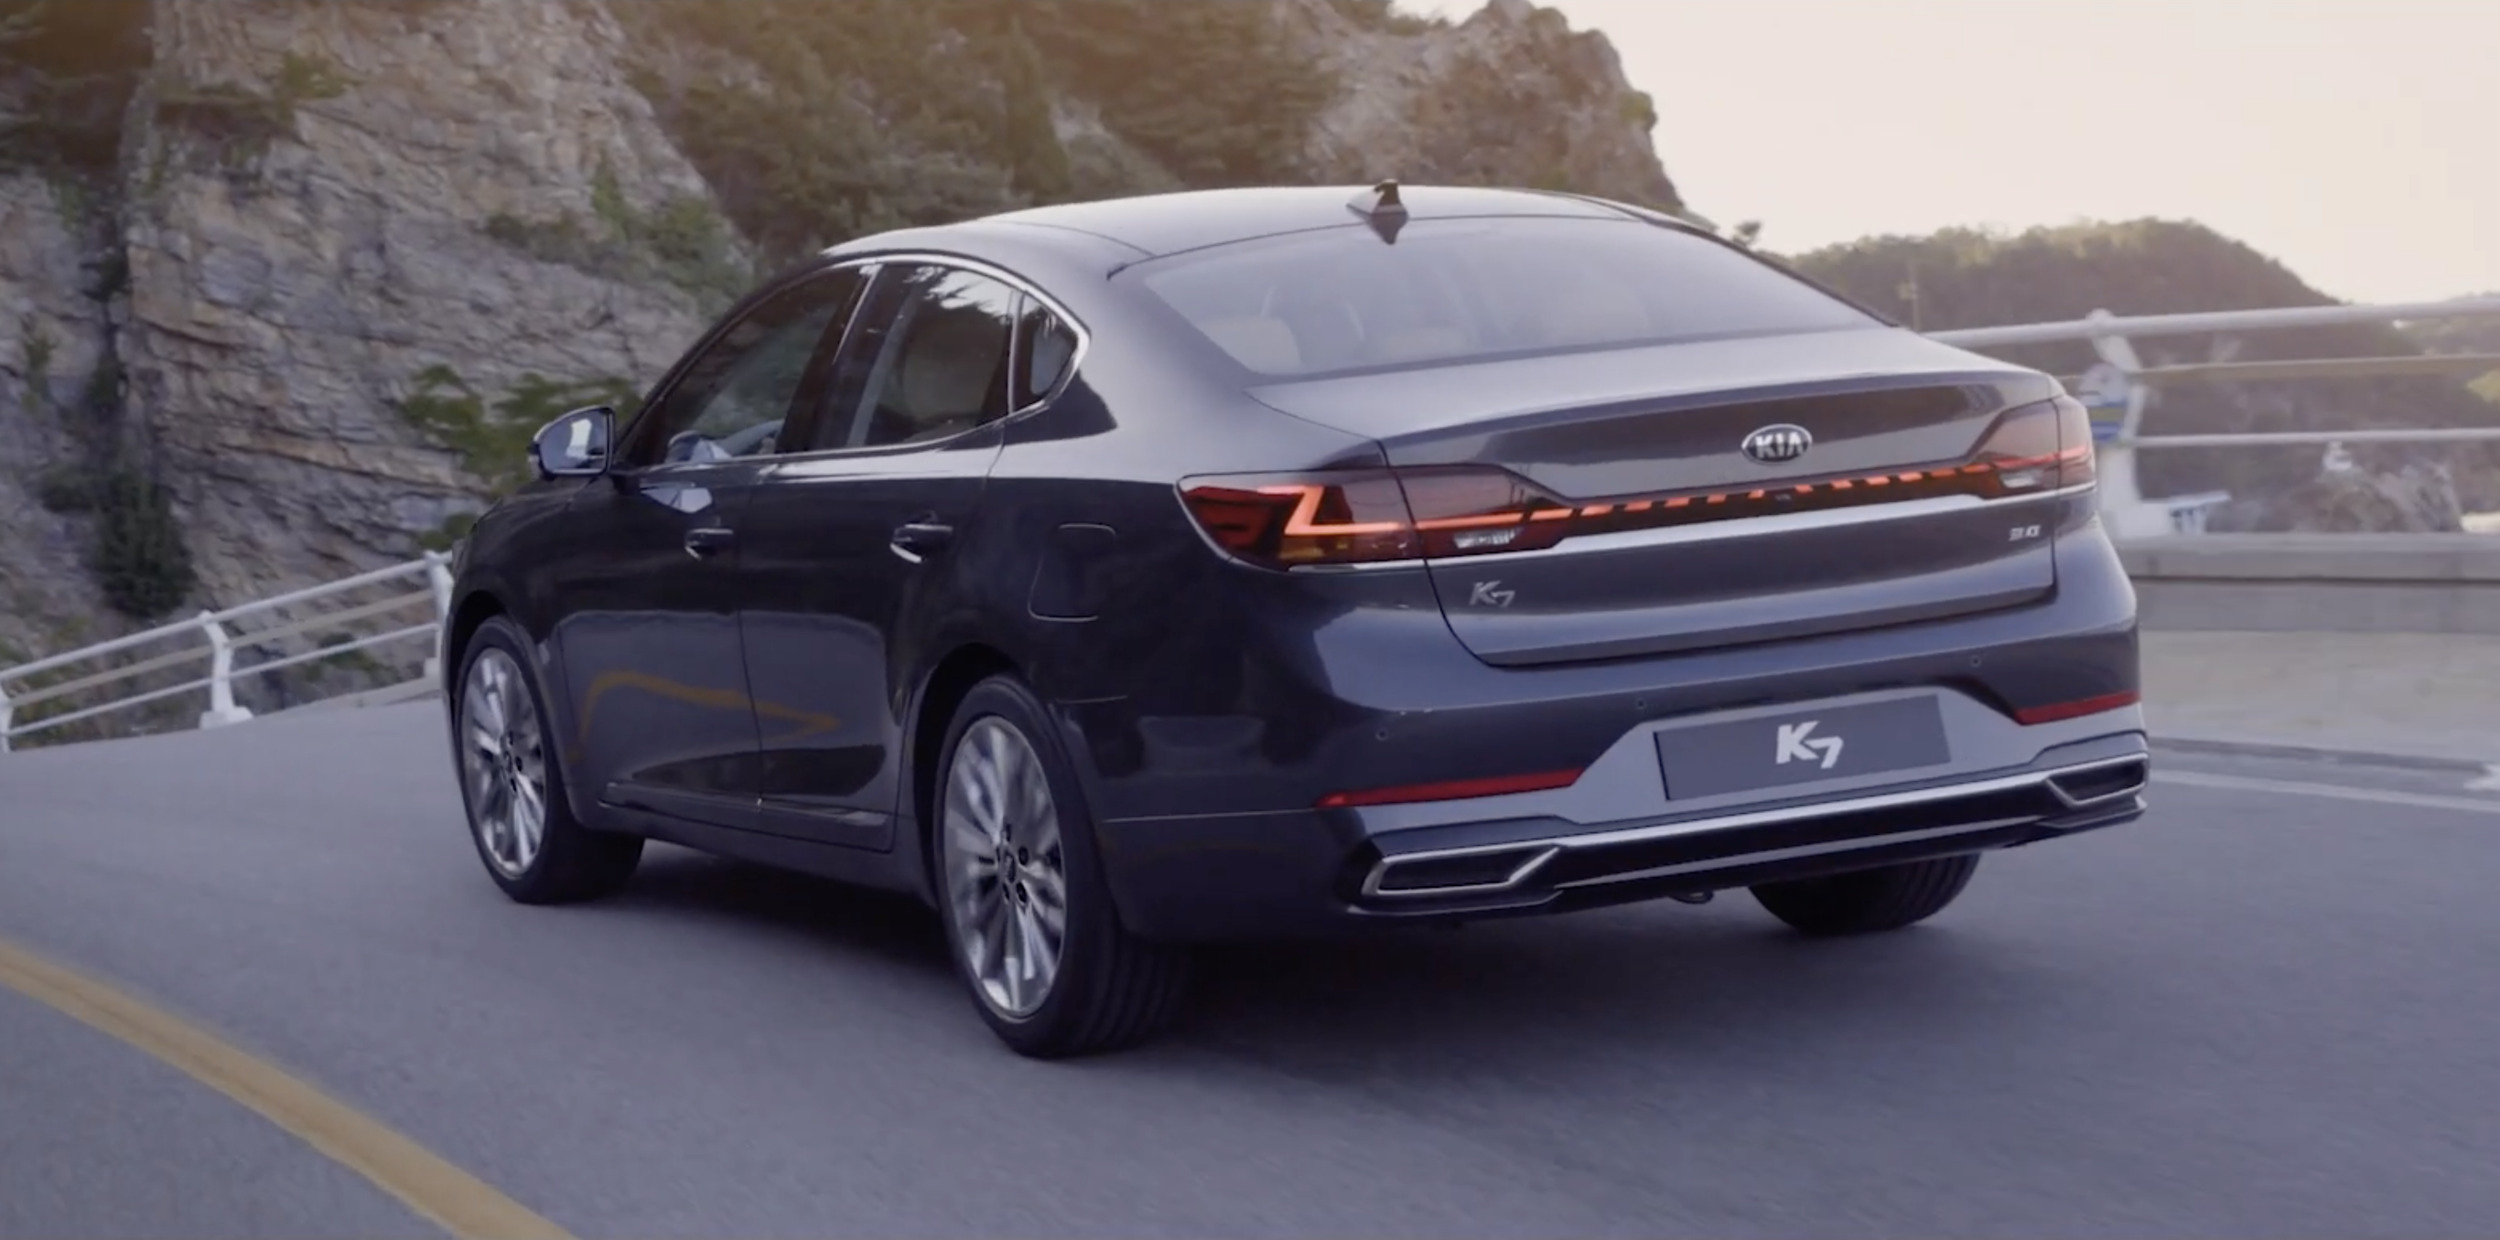 2020 Kia Cadenza takes the styling up a notch in its mid ...